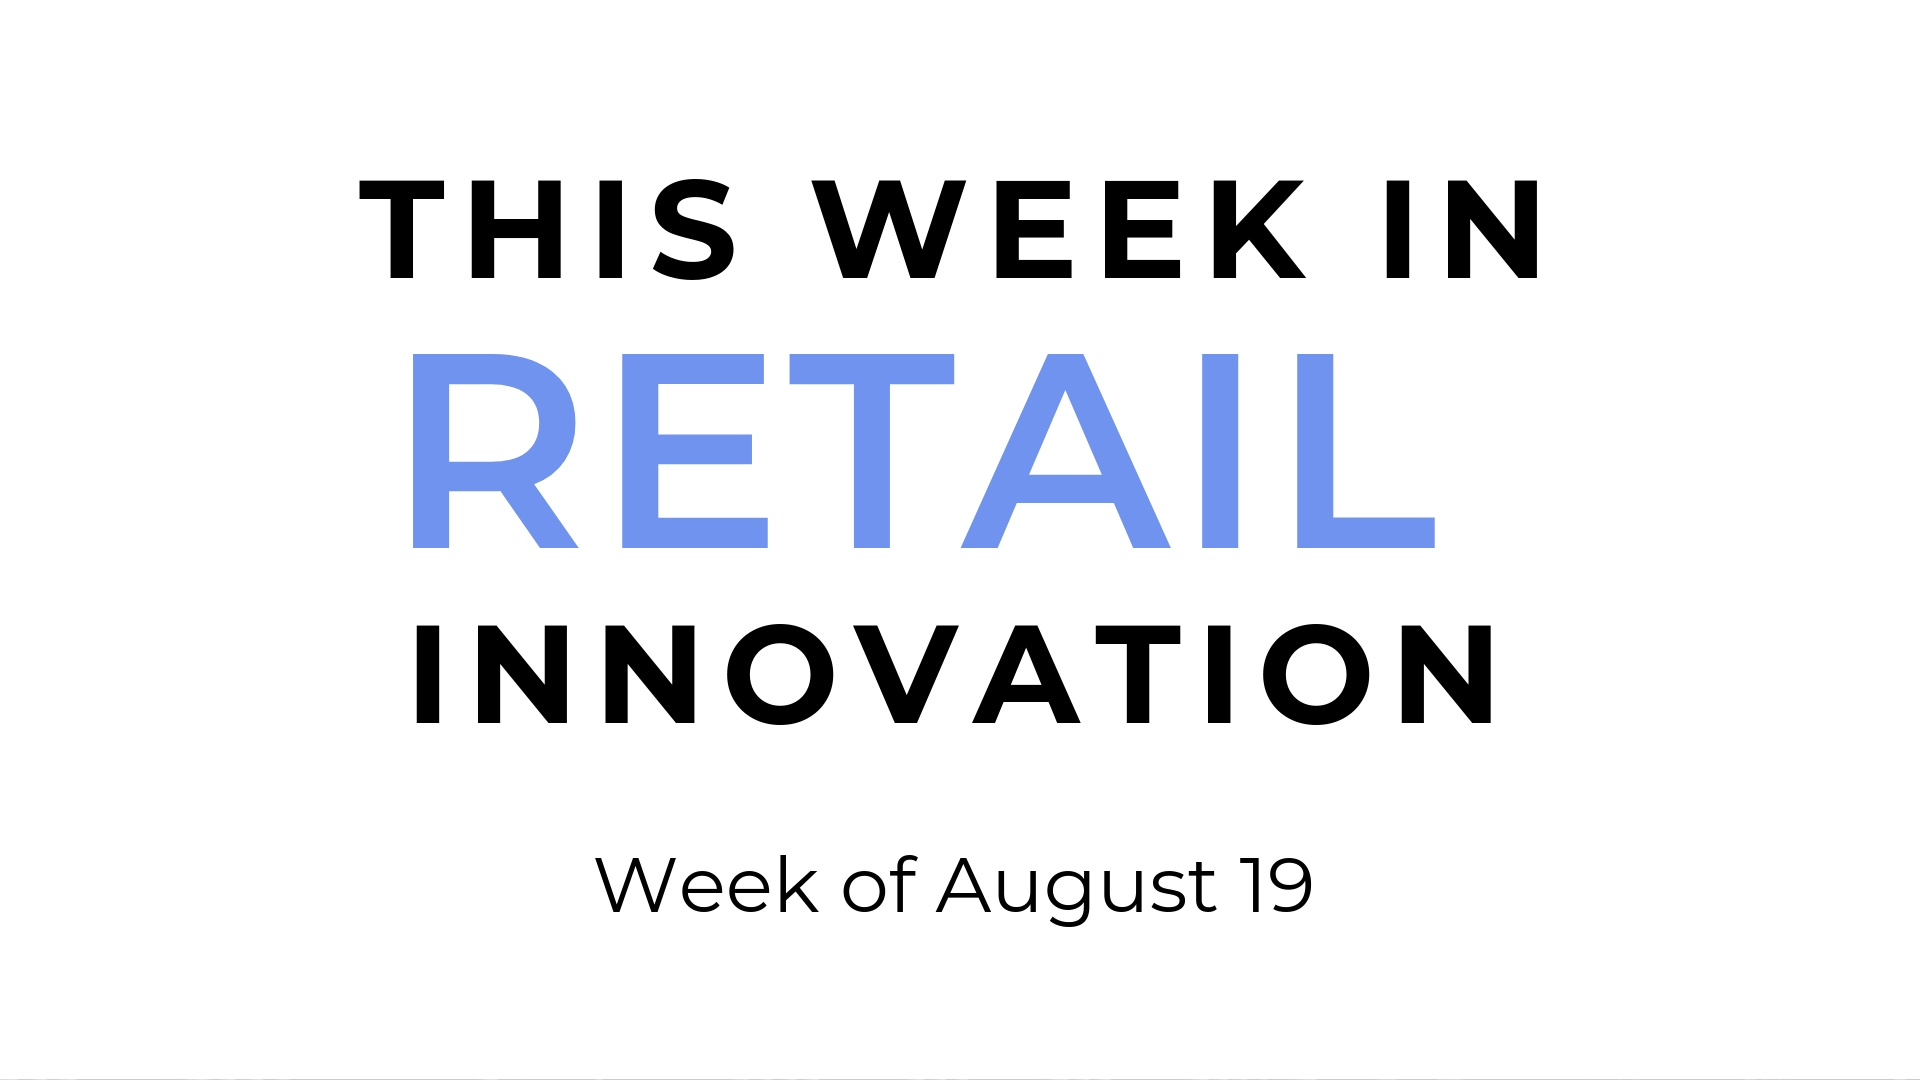 Perch_Content_This Week in Retail Innovation_Influential CEO_Kohls Facebook_Steinmart Digital POS